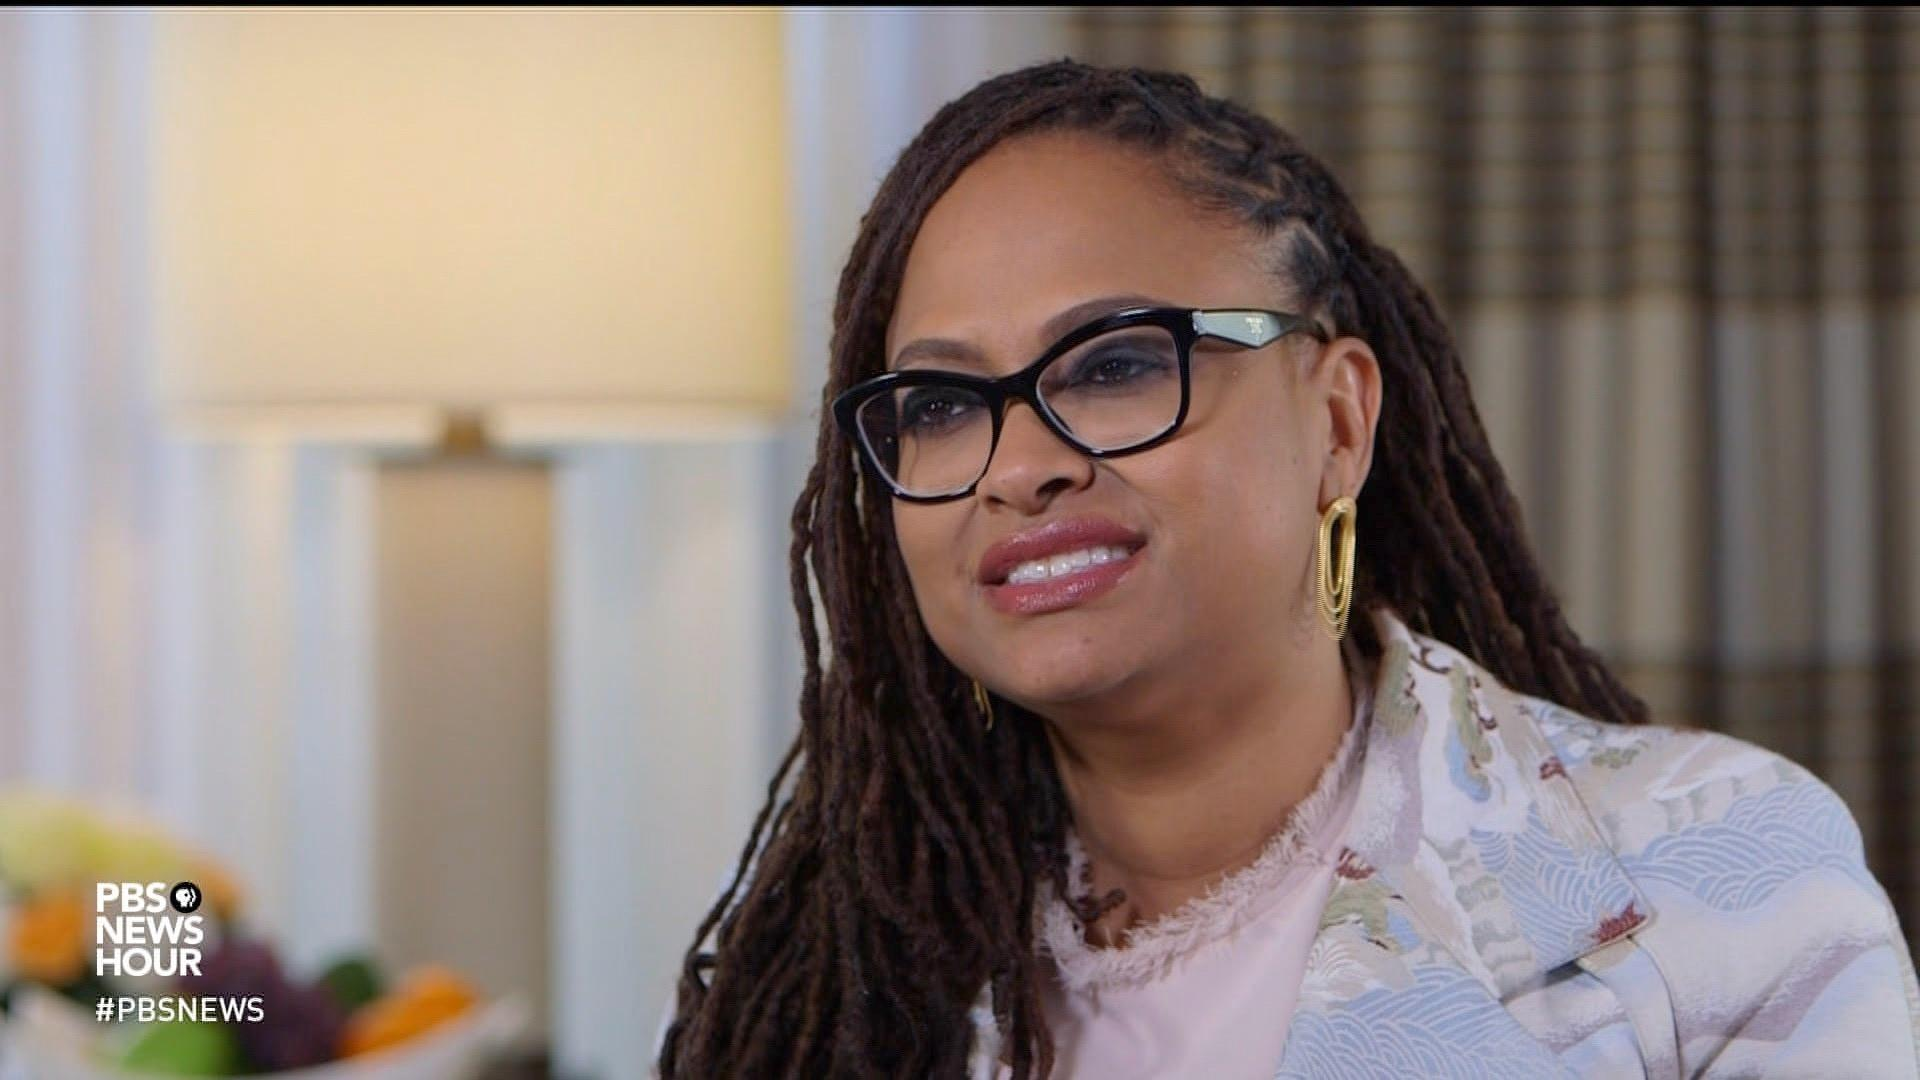 Director Ava DuVernay is breaking down walls in Hollywood